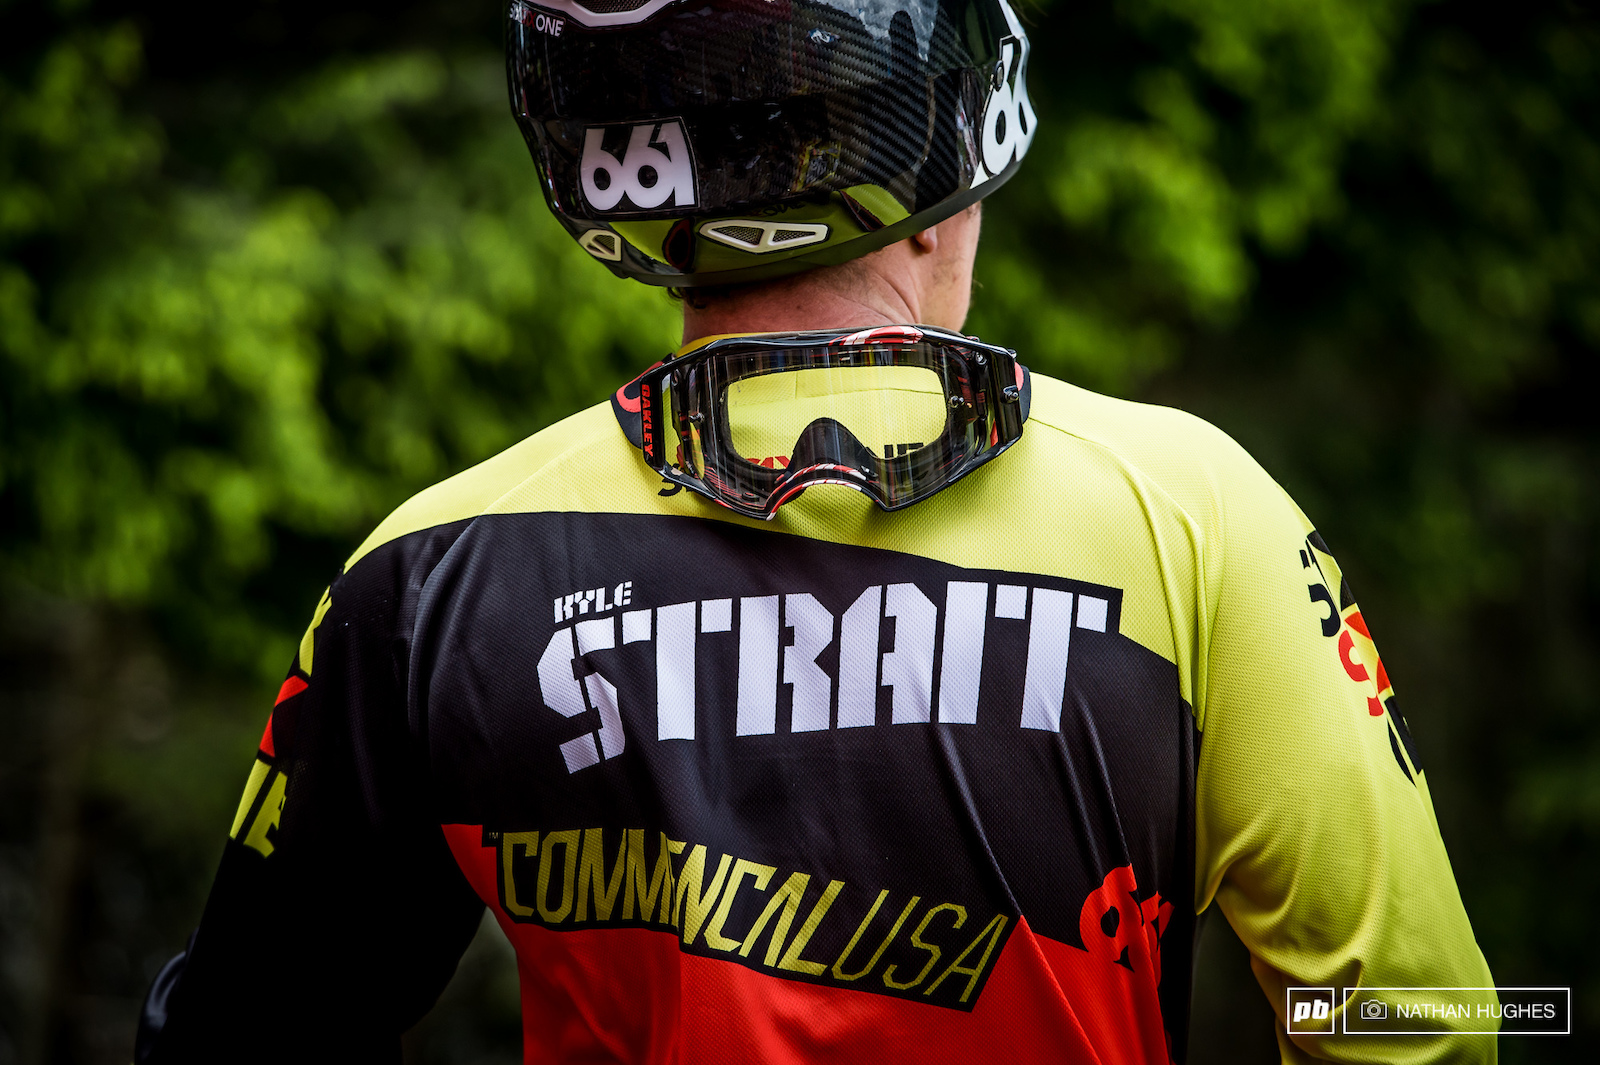 Kyle Strait was pipped by Slavik in New Zealand and will be out for retribution here in LG.